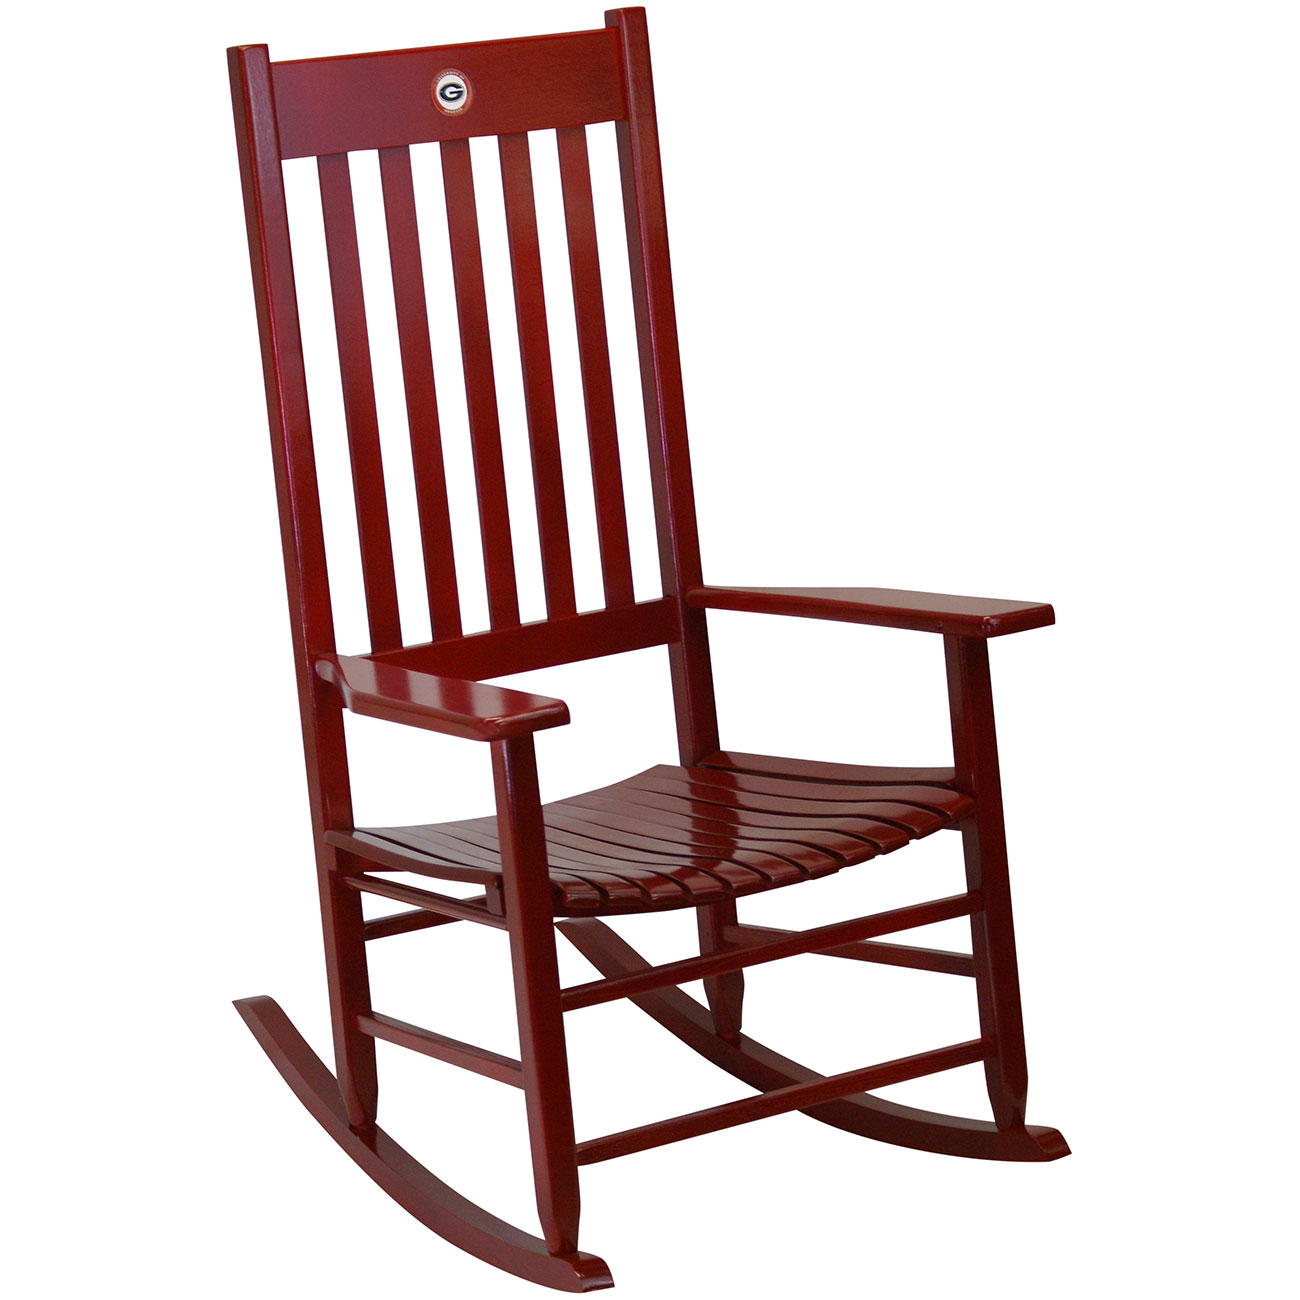 Best Place To Buy Rocking Chairs Team Color Rocking Chair Georgia